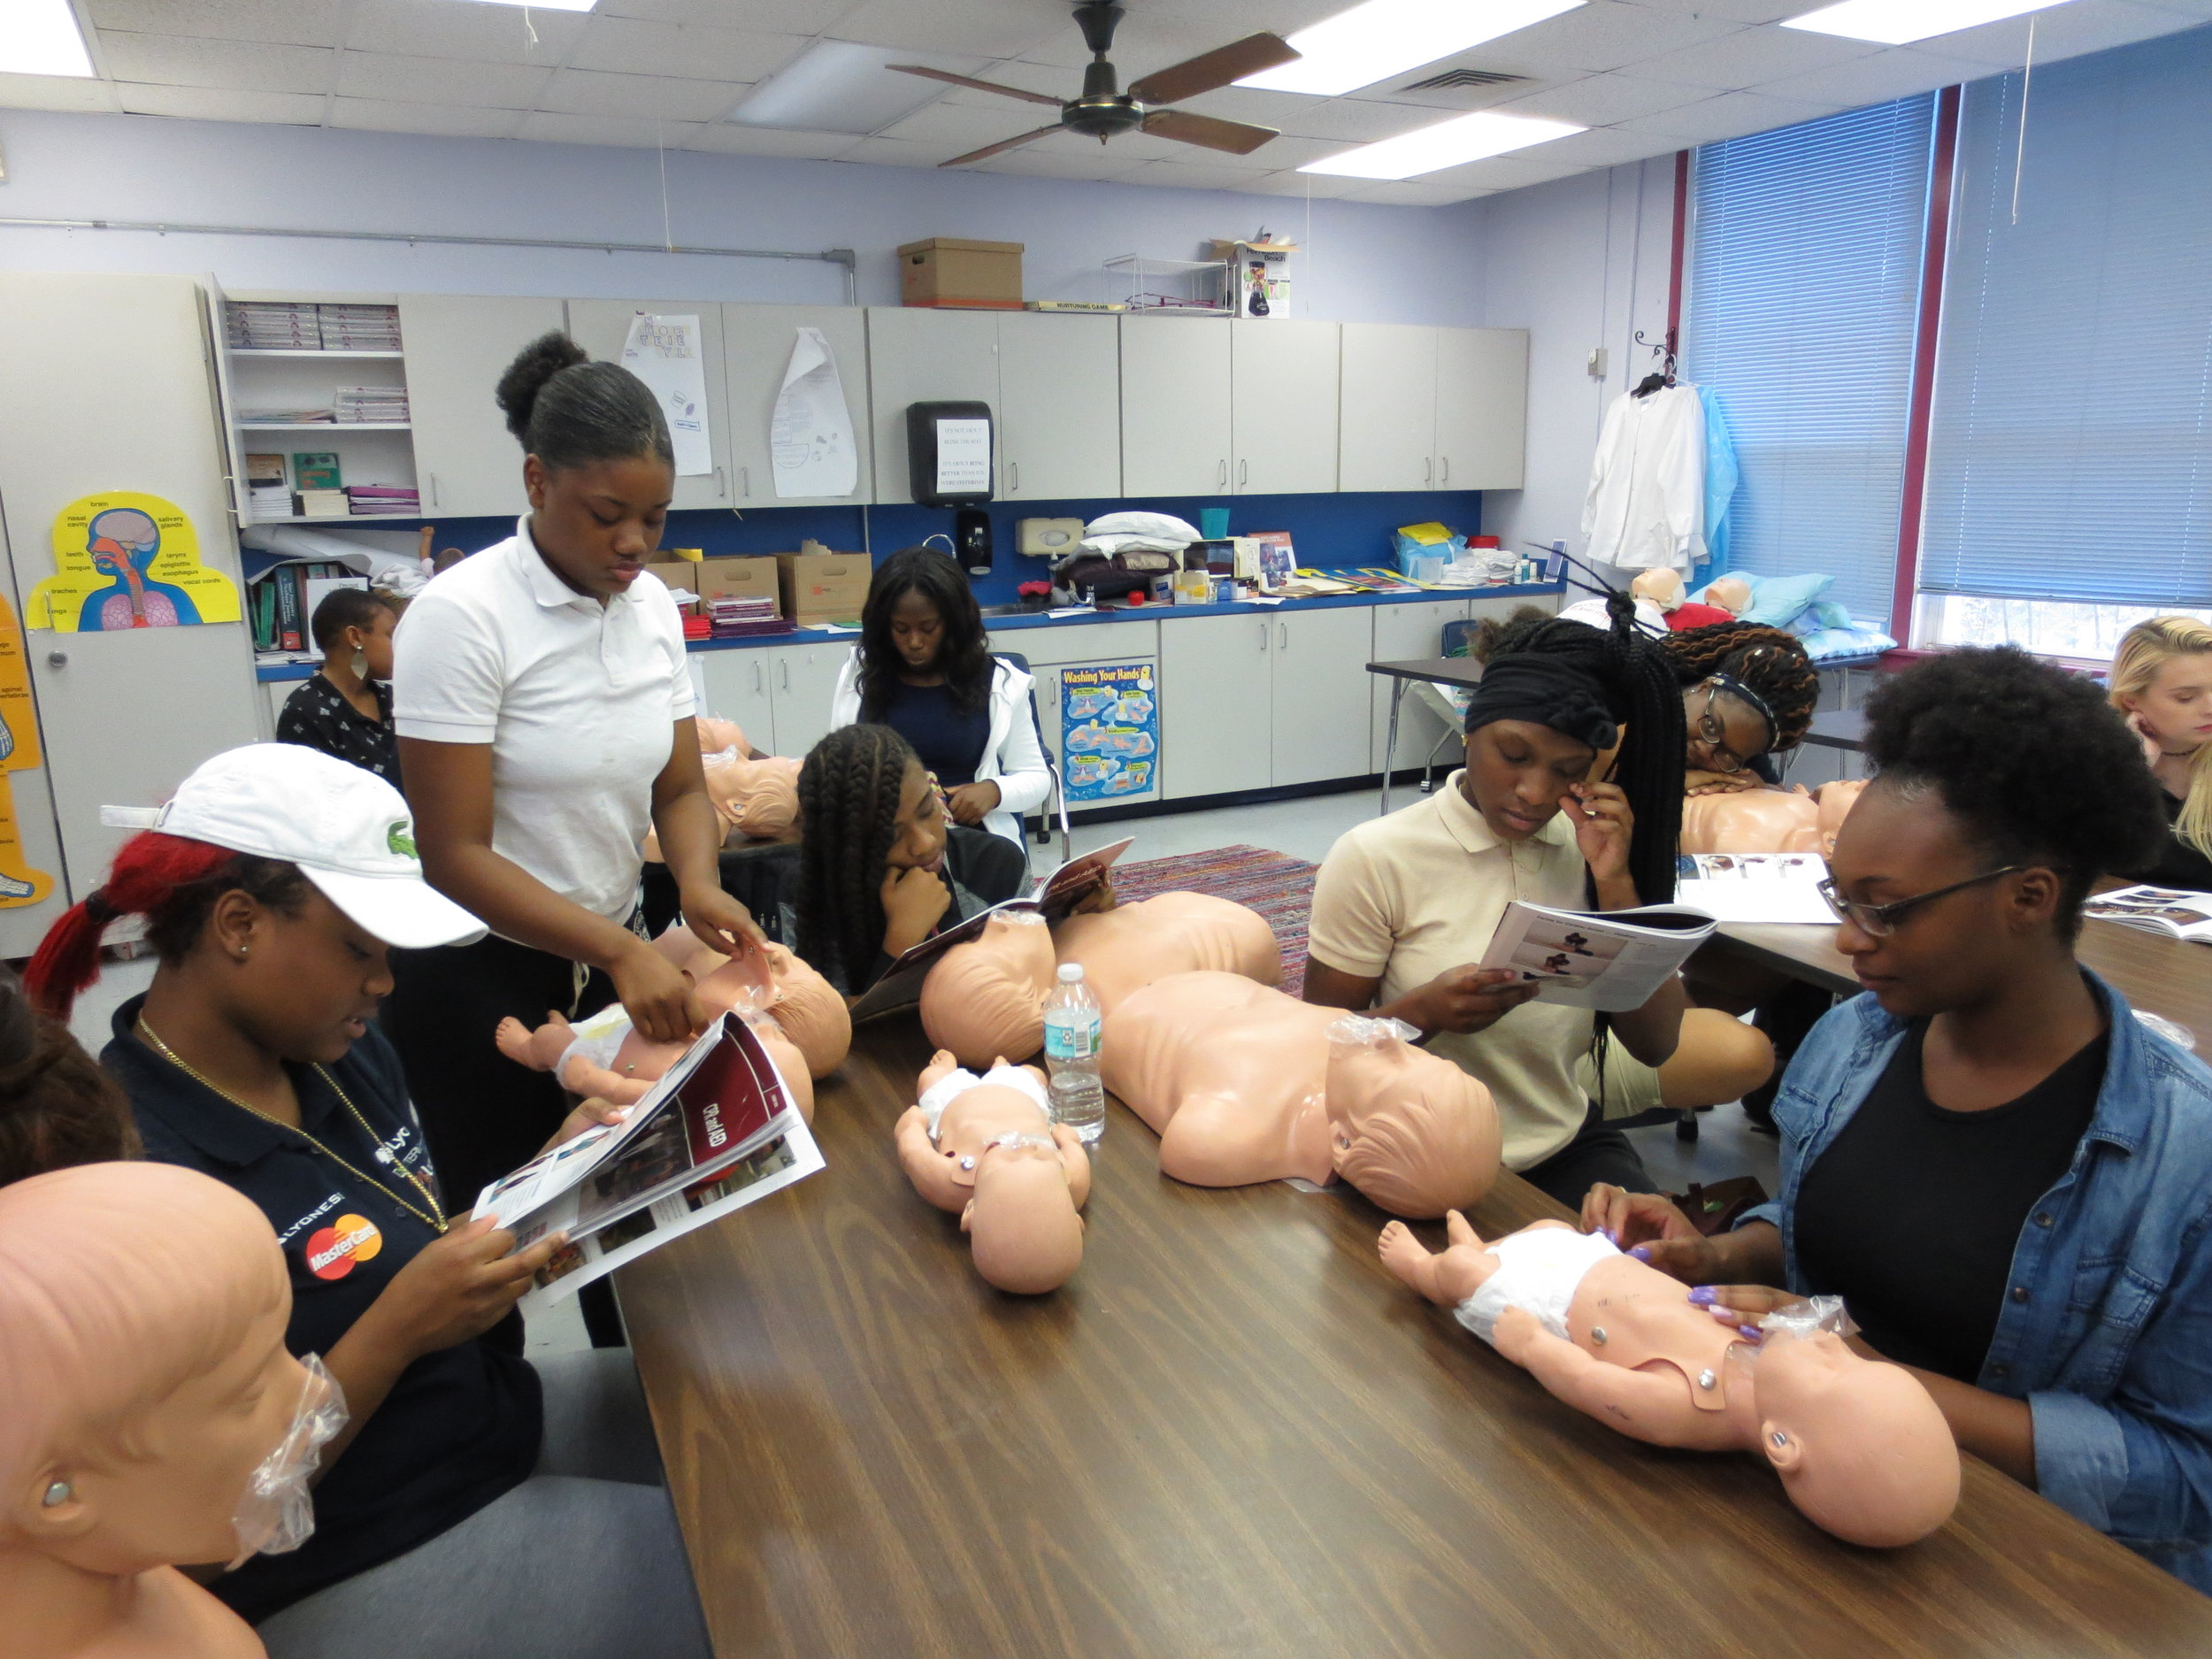 Students learn infant CPR for certification in the Health Care track of Career Connections